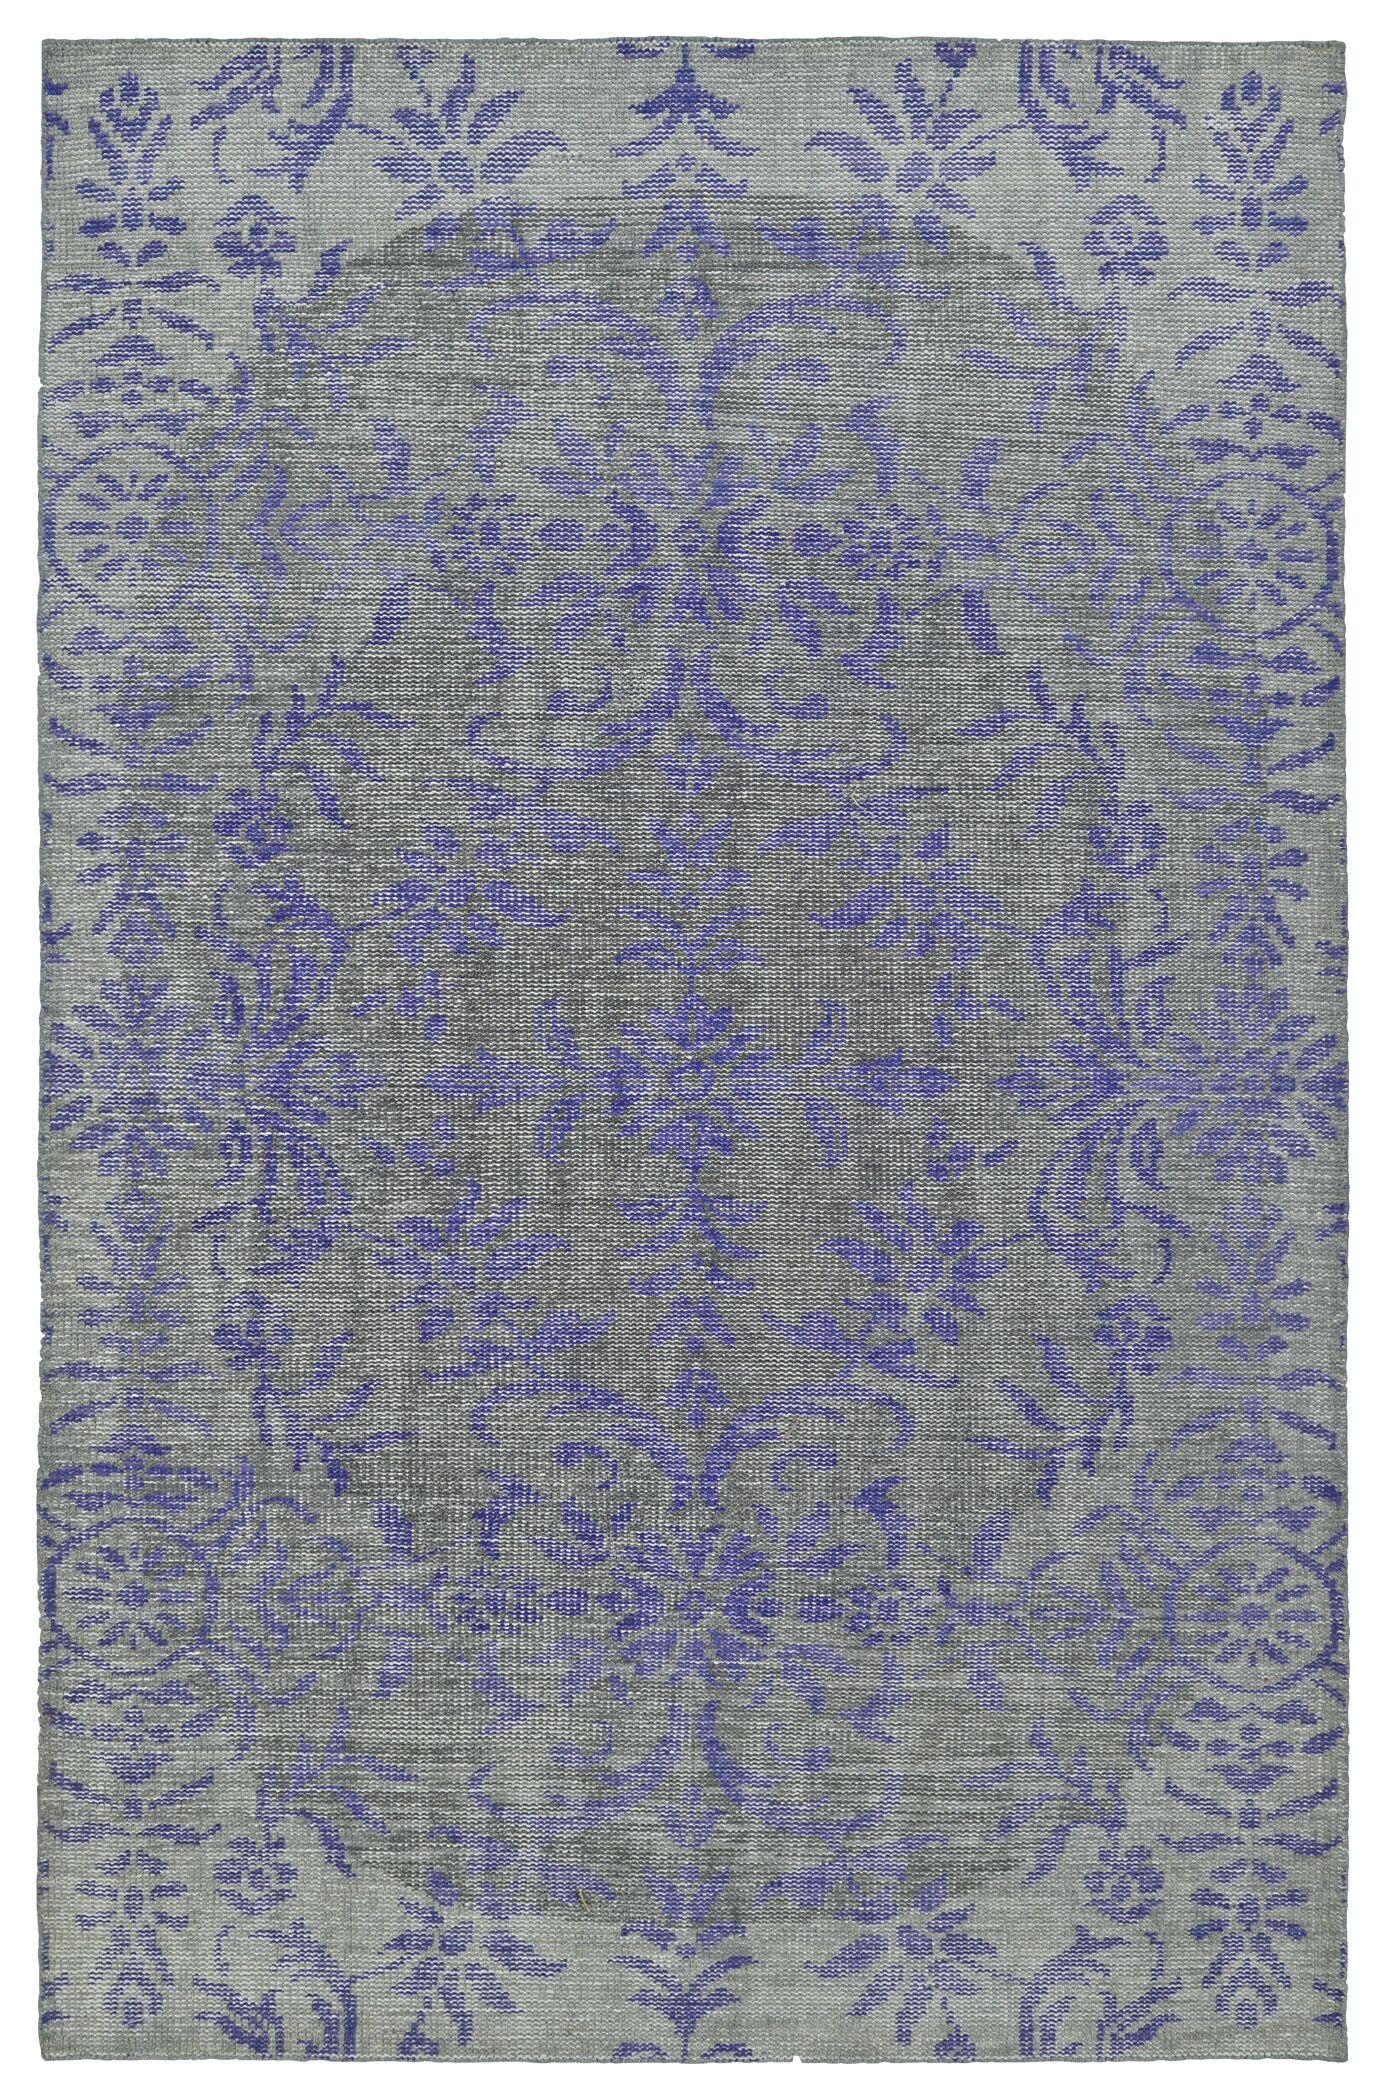 Masmoudi Hand-Knotted Purple/Gray Area Rug Rug Size: Rectangle 9' x 12'